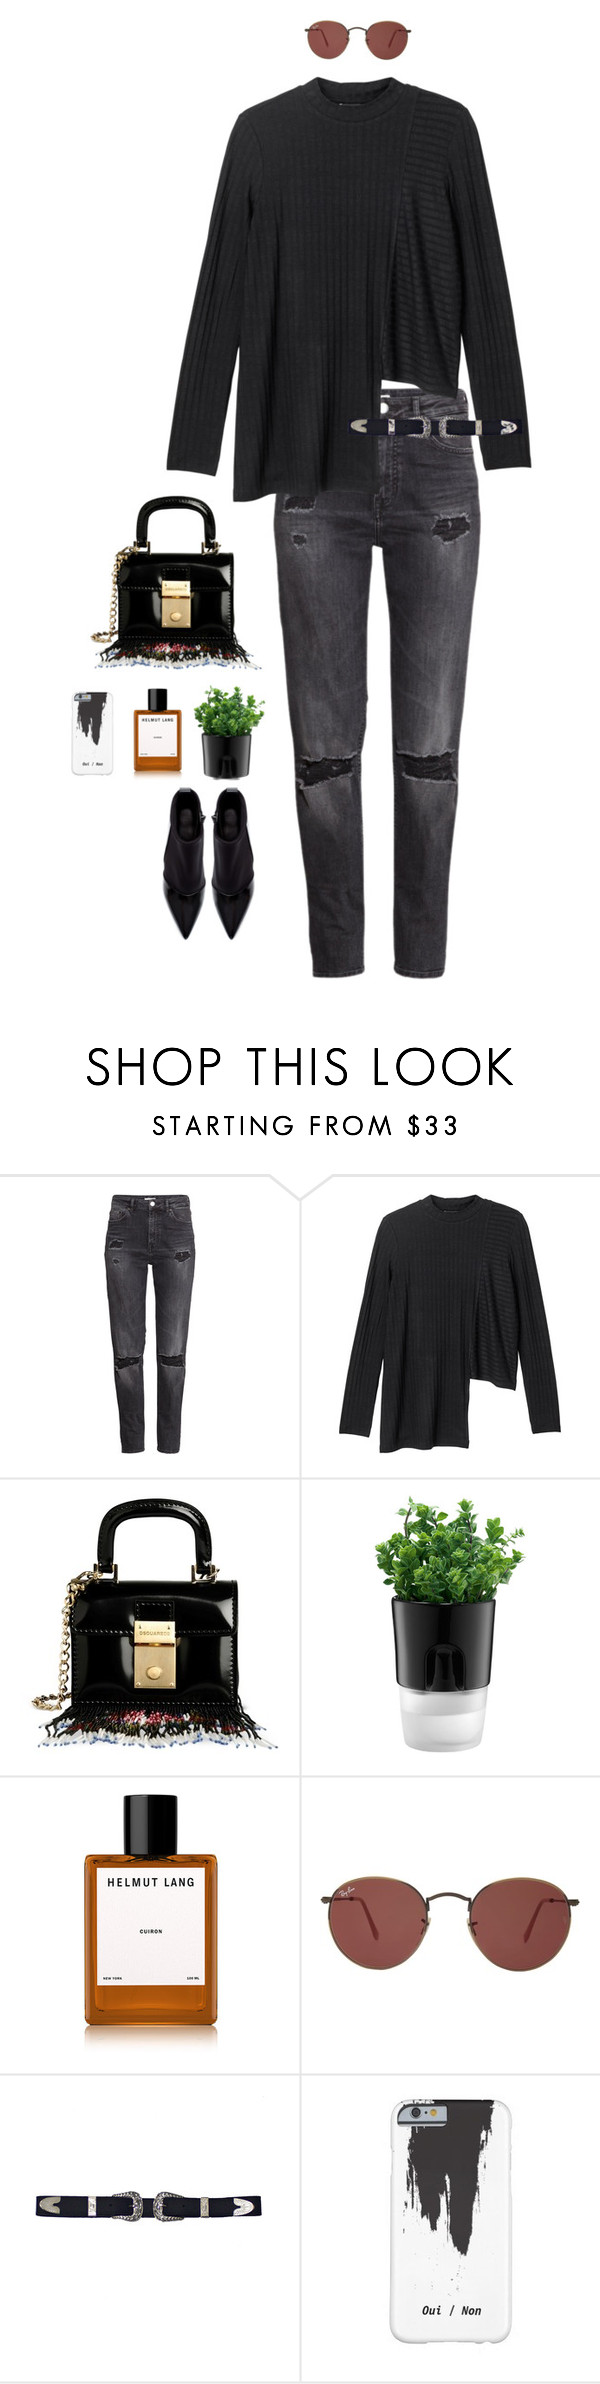 """Untitled #462"" by bareluxe ❤ liked on Polyvore featuring H&M, Monki, Dsquared2, Bodum, Helmut Lang, Ray-Ban, Zara, women's clothing, women and female"